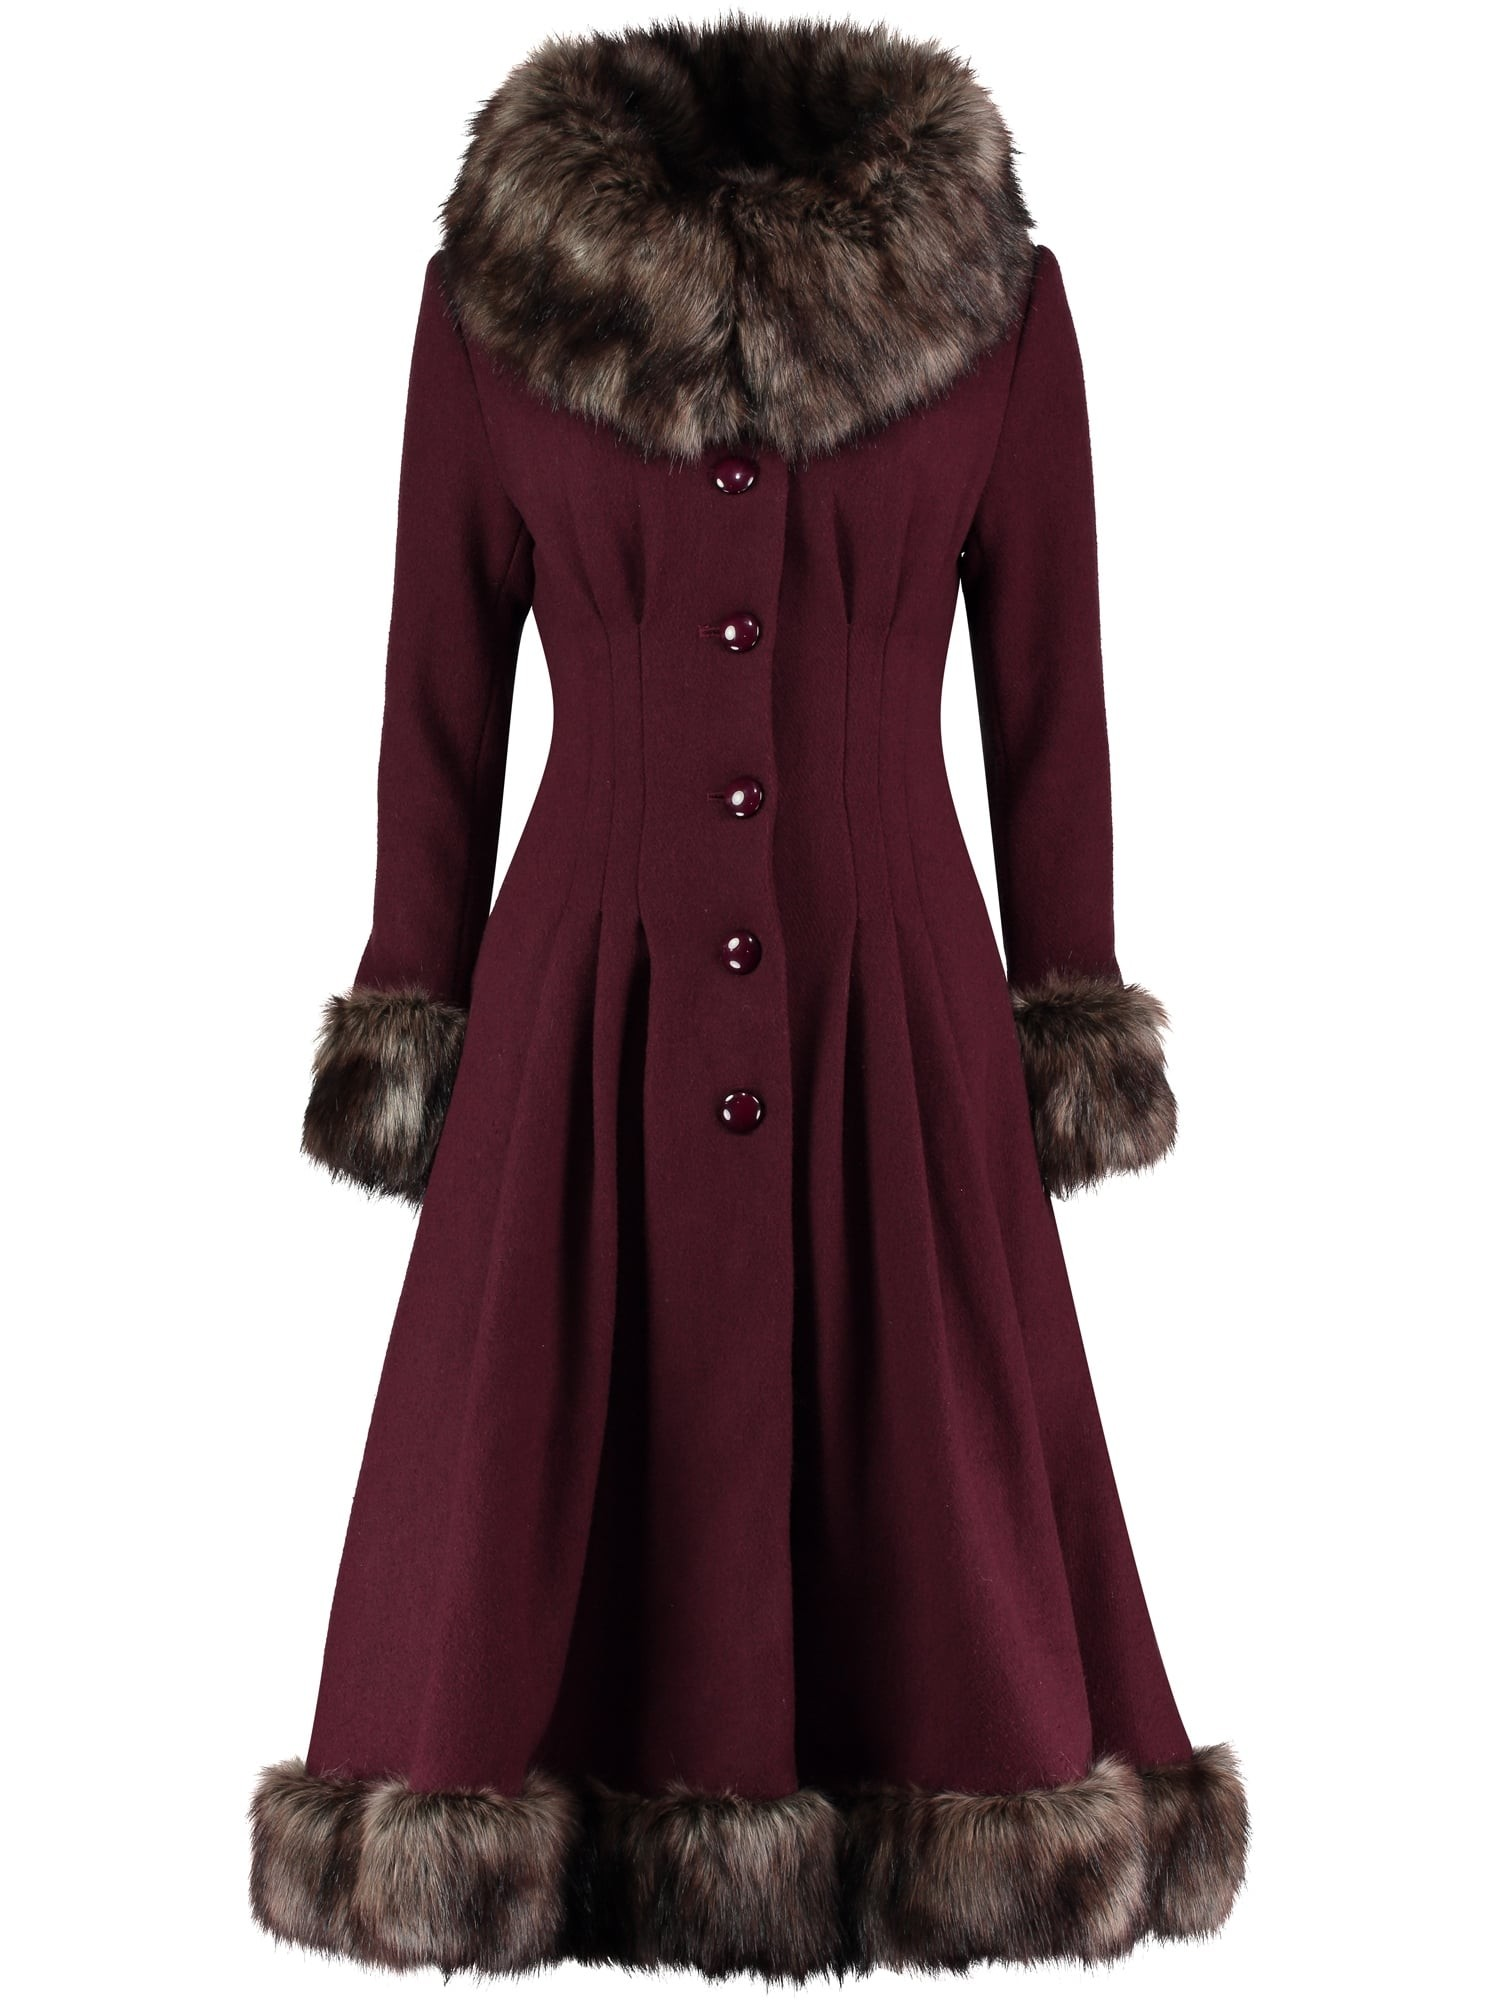 Collectif Vintage Pearl Coat in Wine